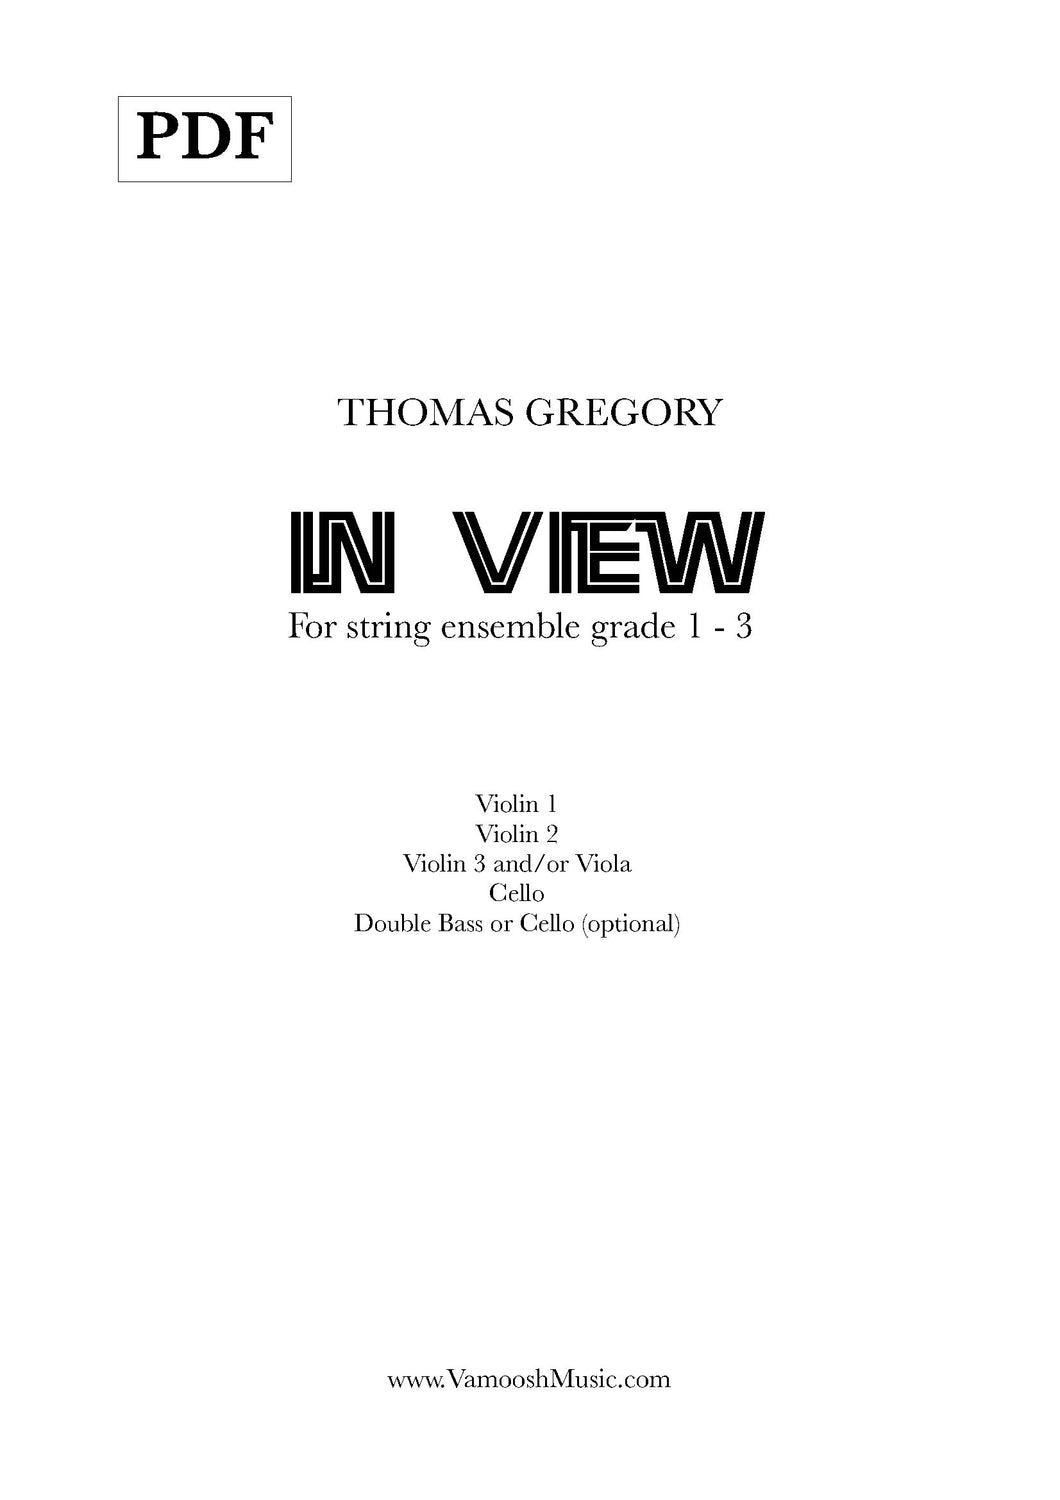 In View (PDF) by Thomas Gregory